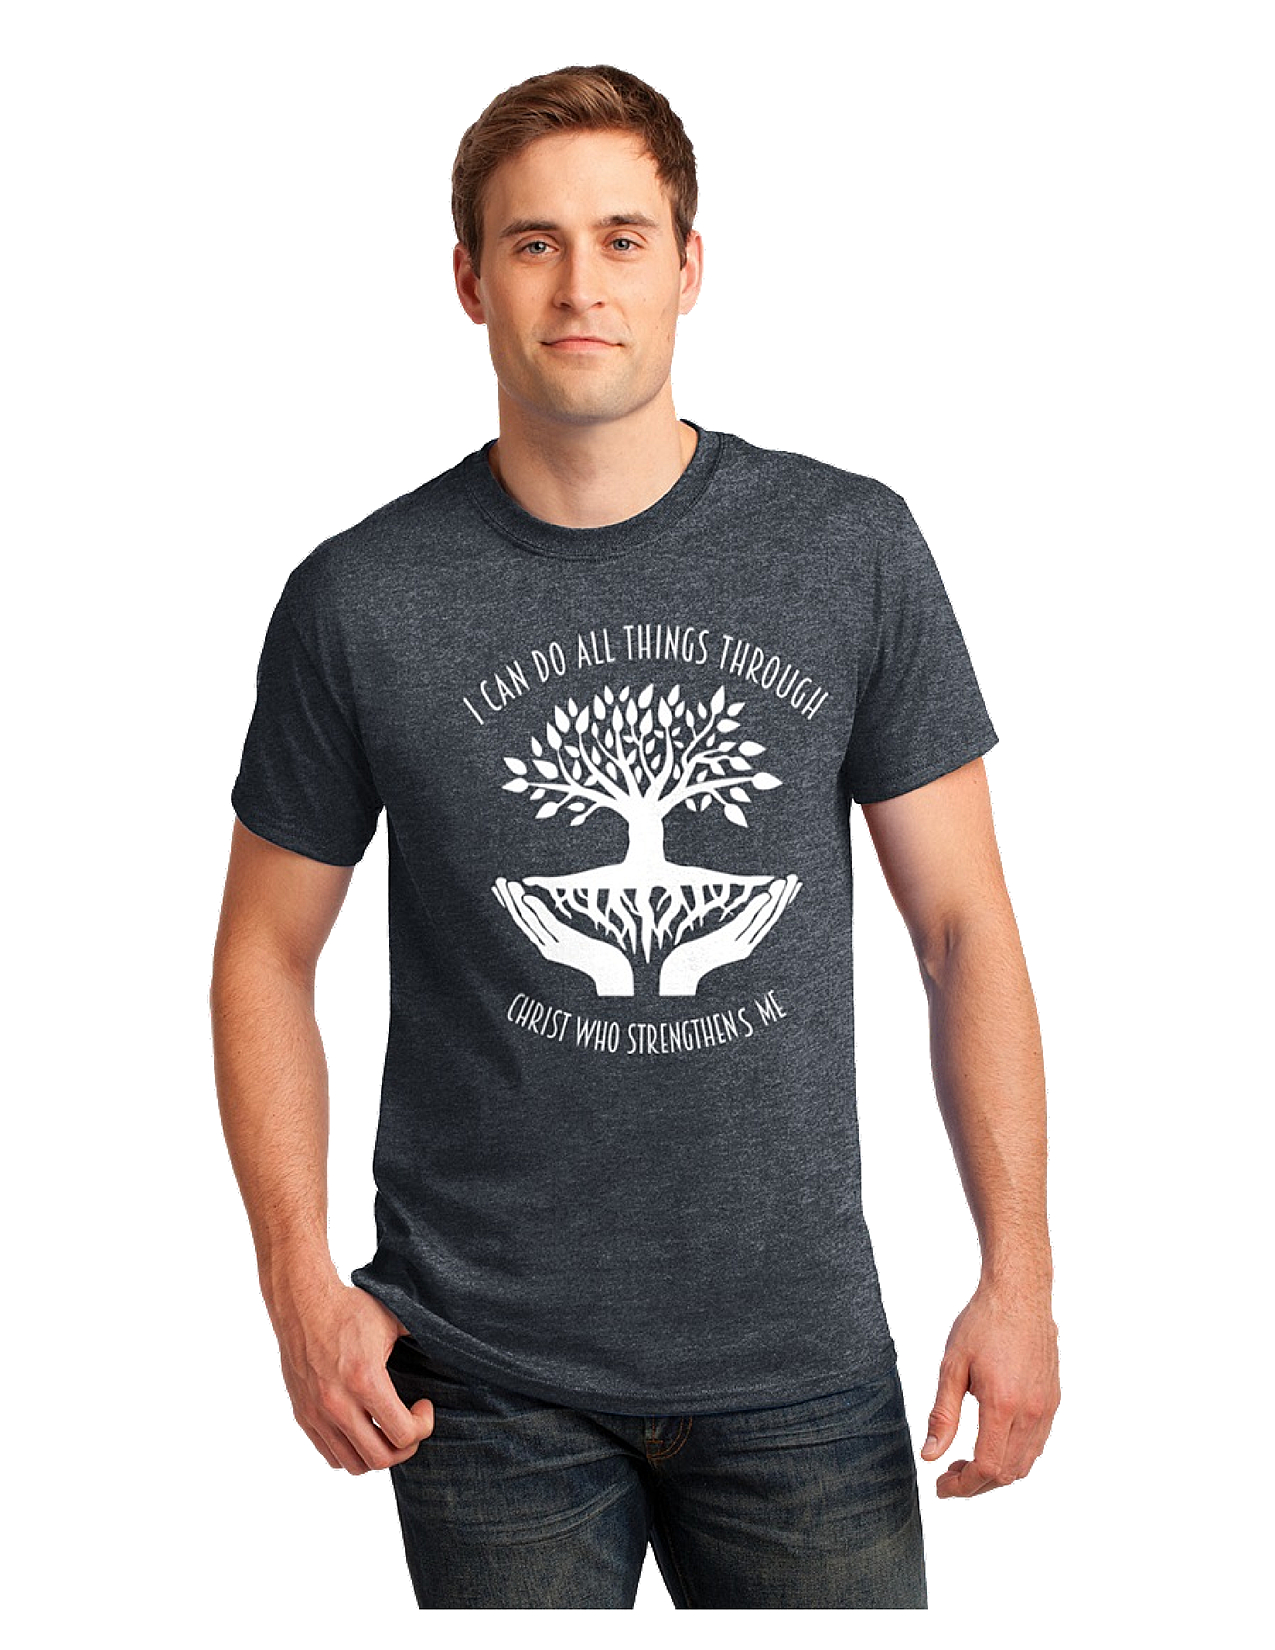 Haiti Mission Trip Fundraiser Shirt 183 Cary S Kids And